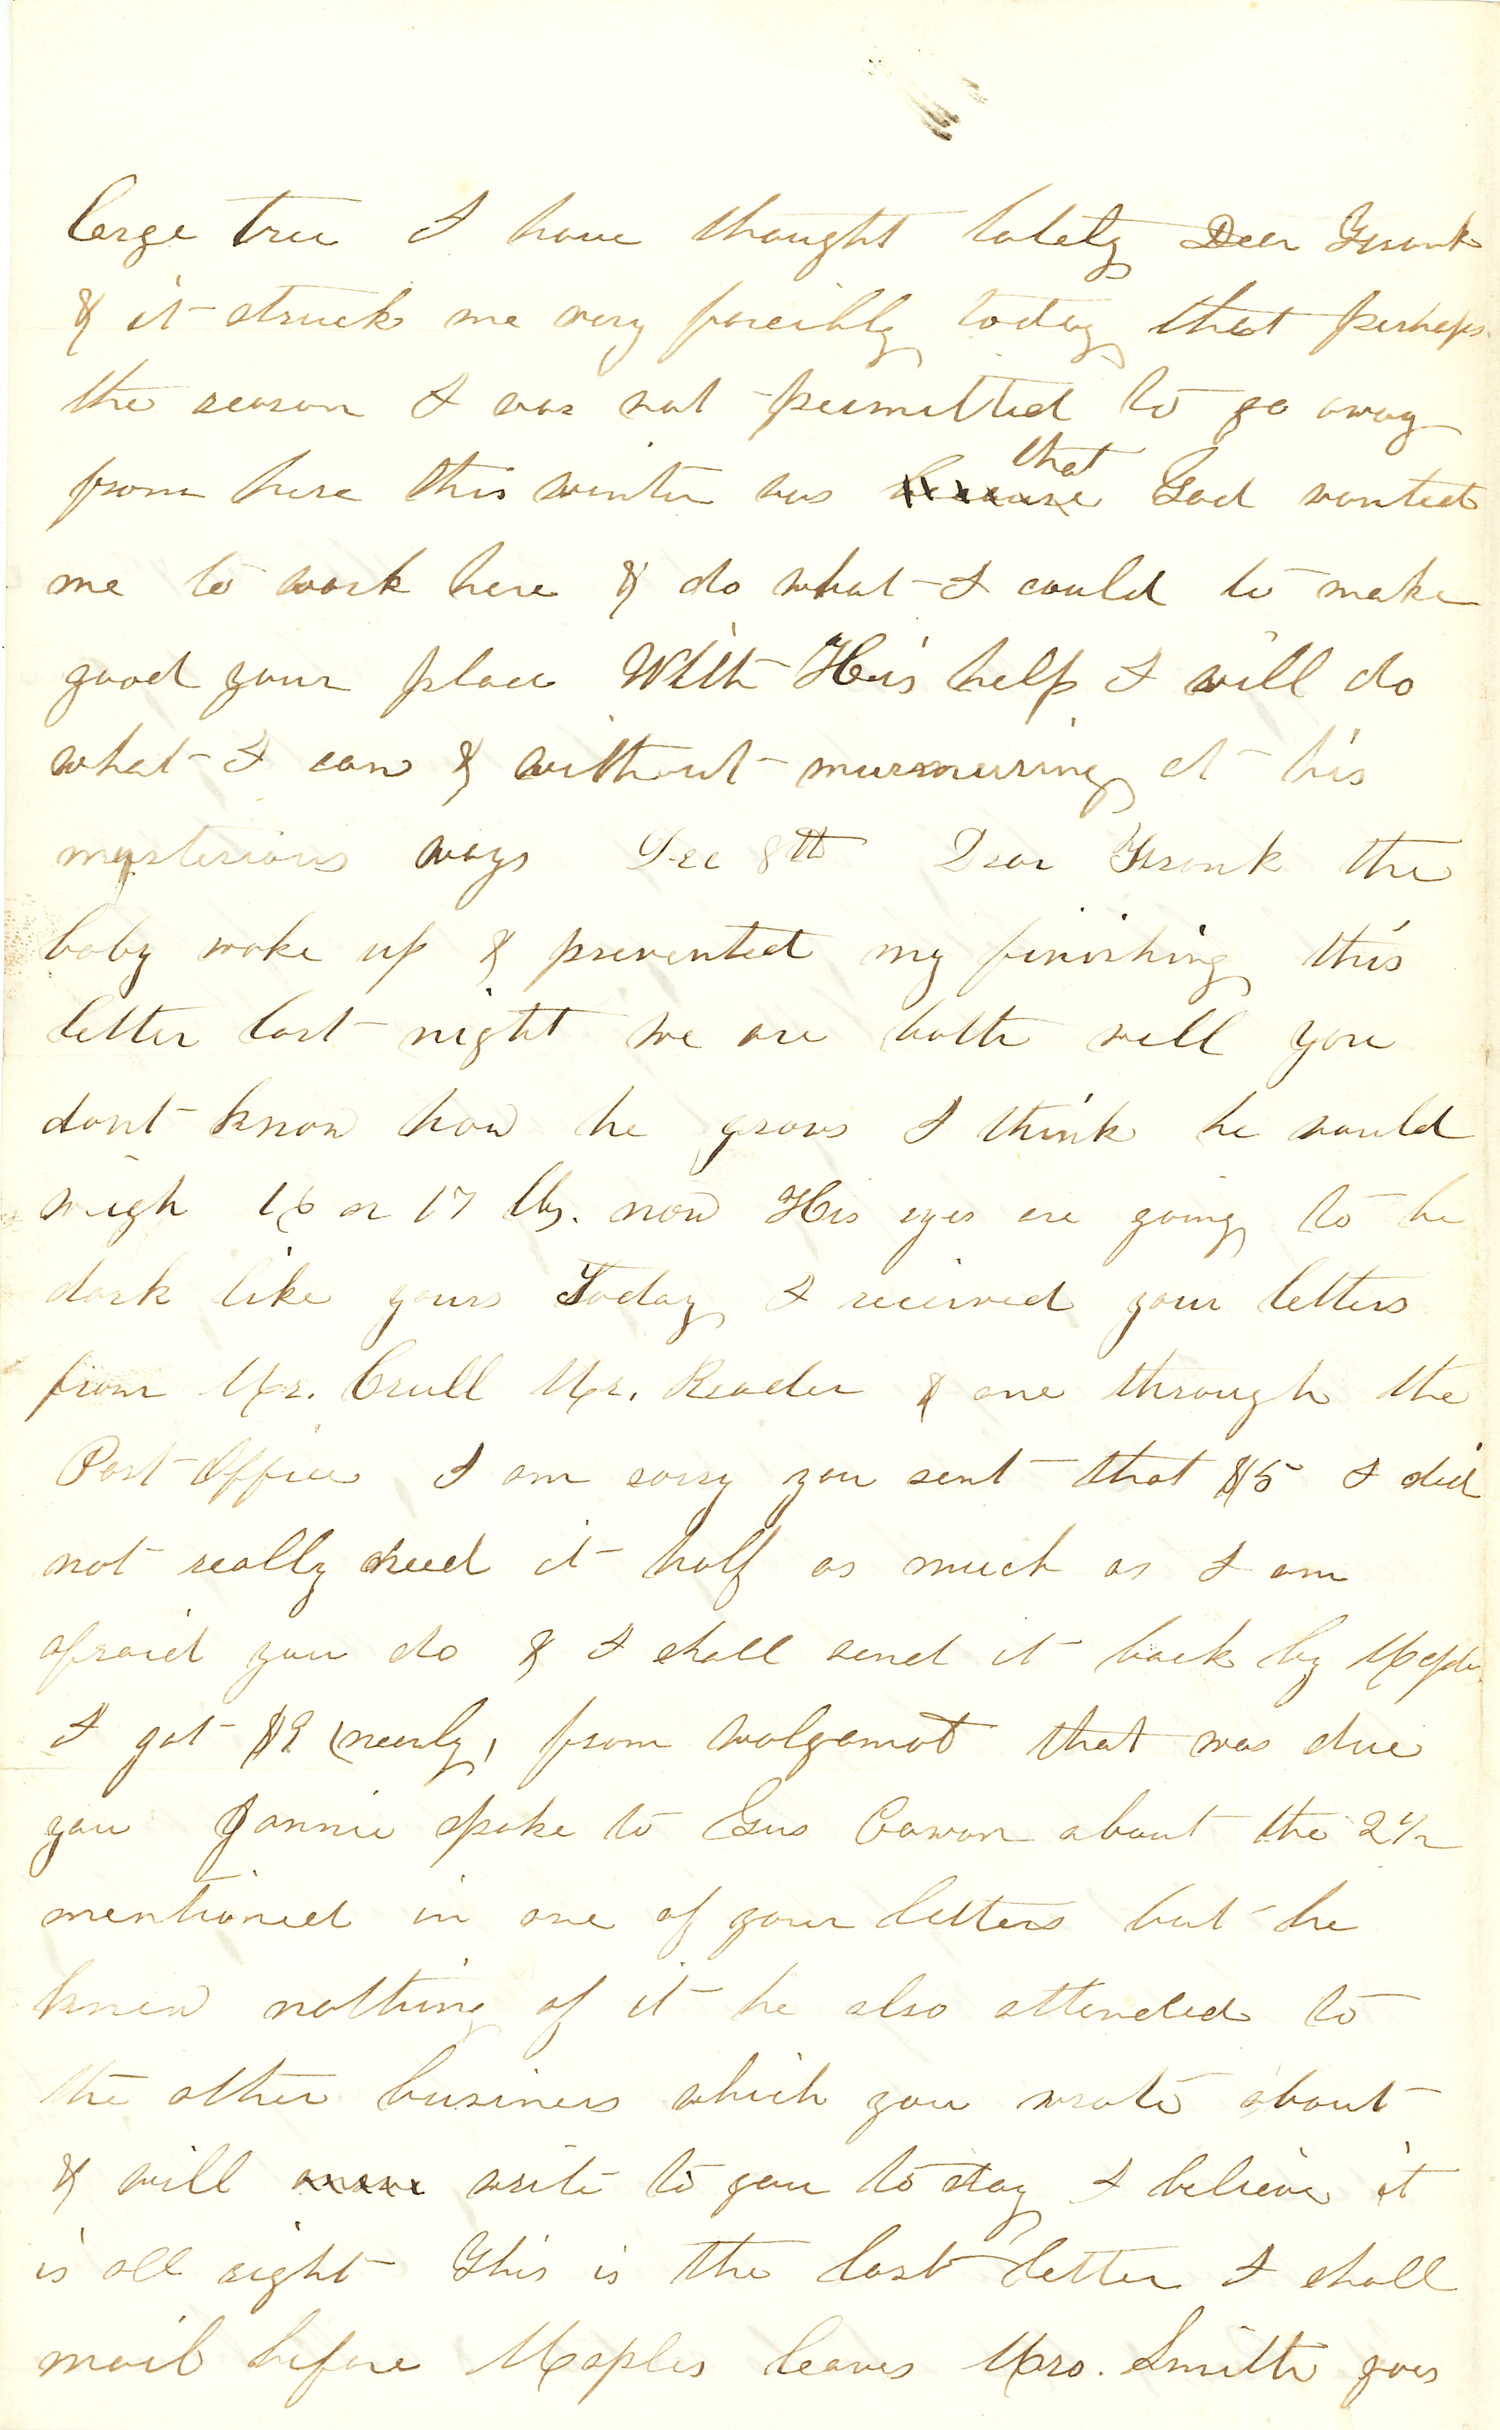 Joseph Culver Letter, December 7, 1862, Page 2